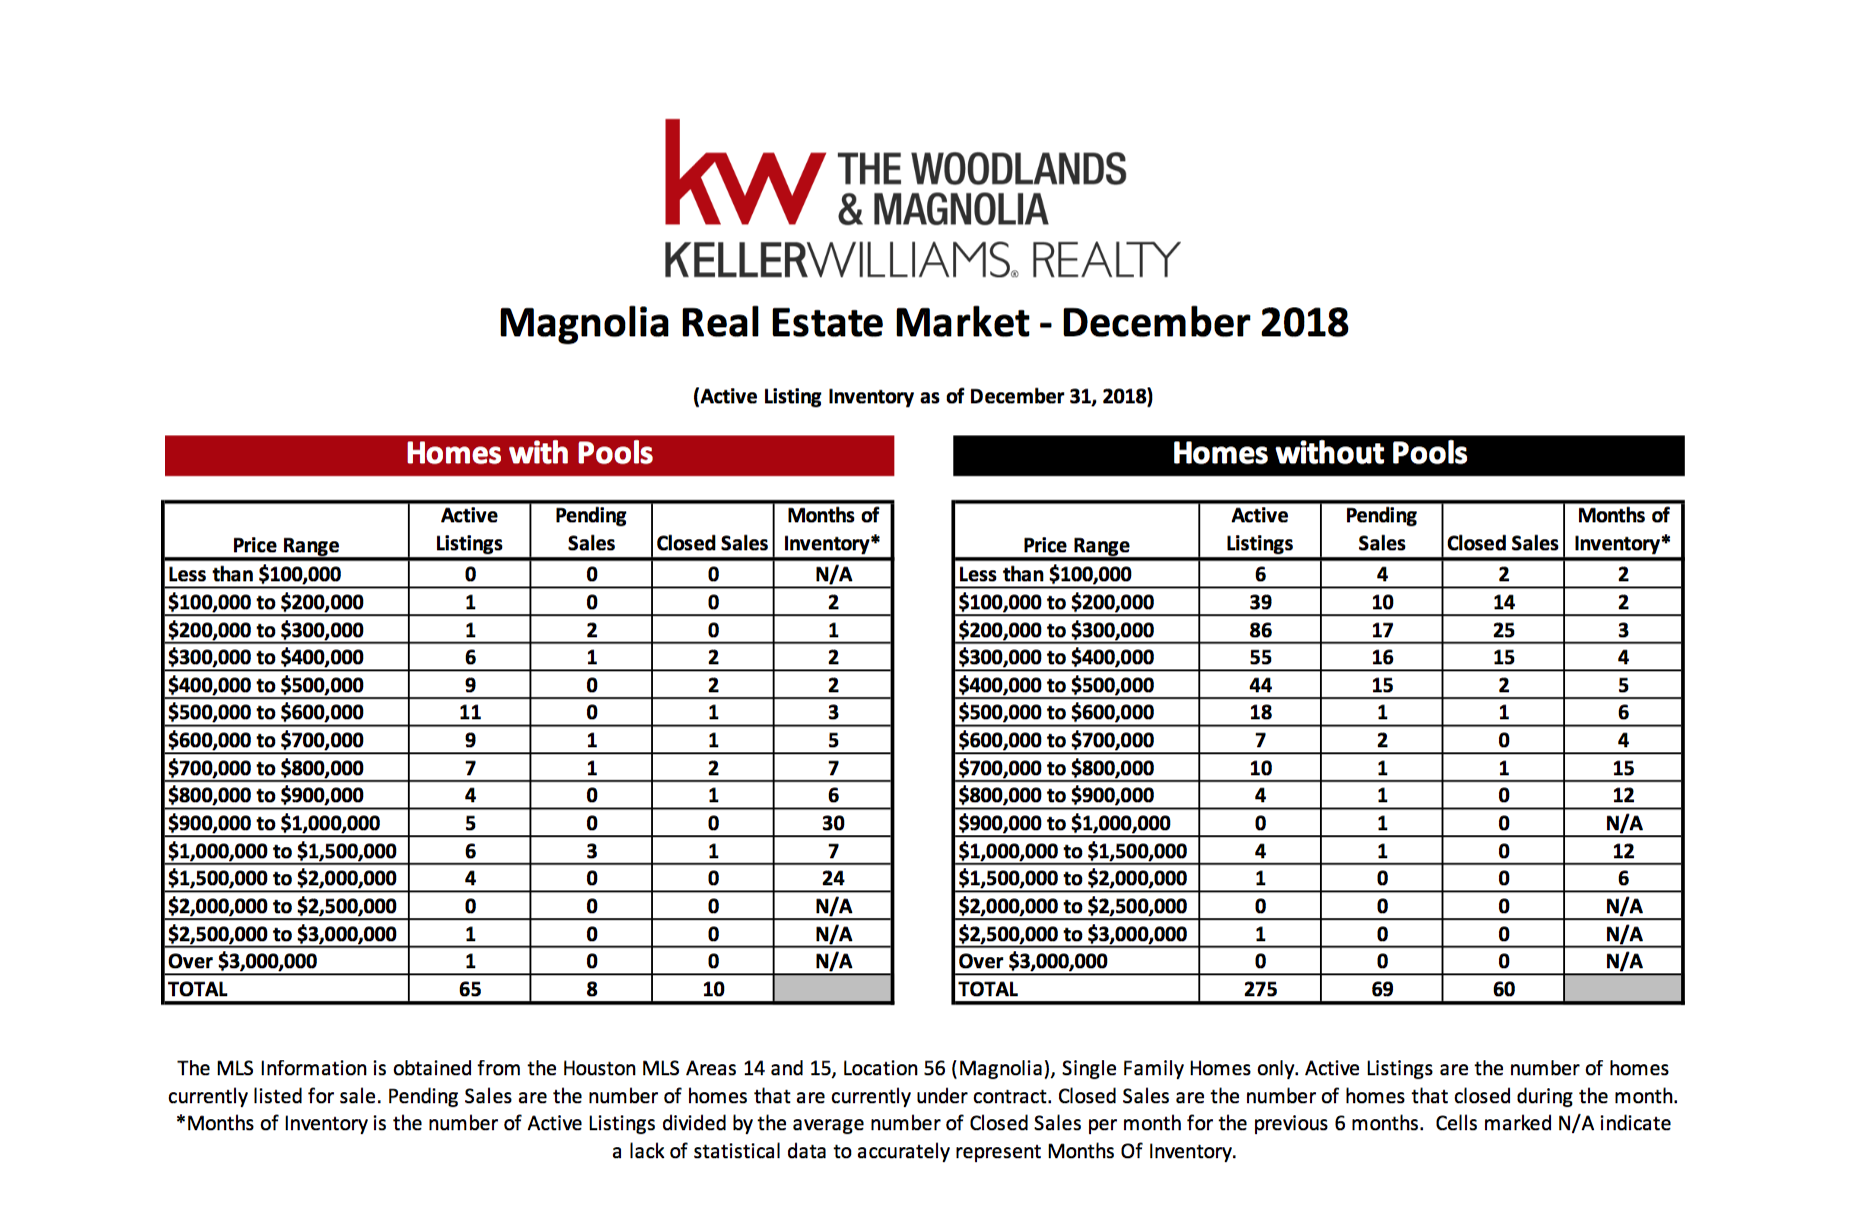 , December 2018 MarketWatch Report – Magnolia, KW Woodlands, KW Woodlands